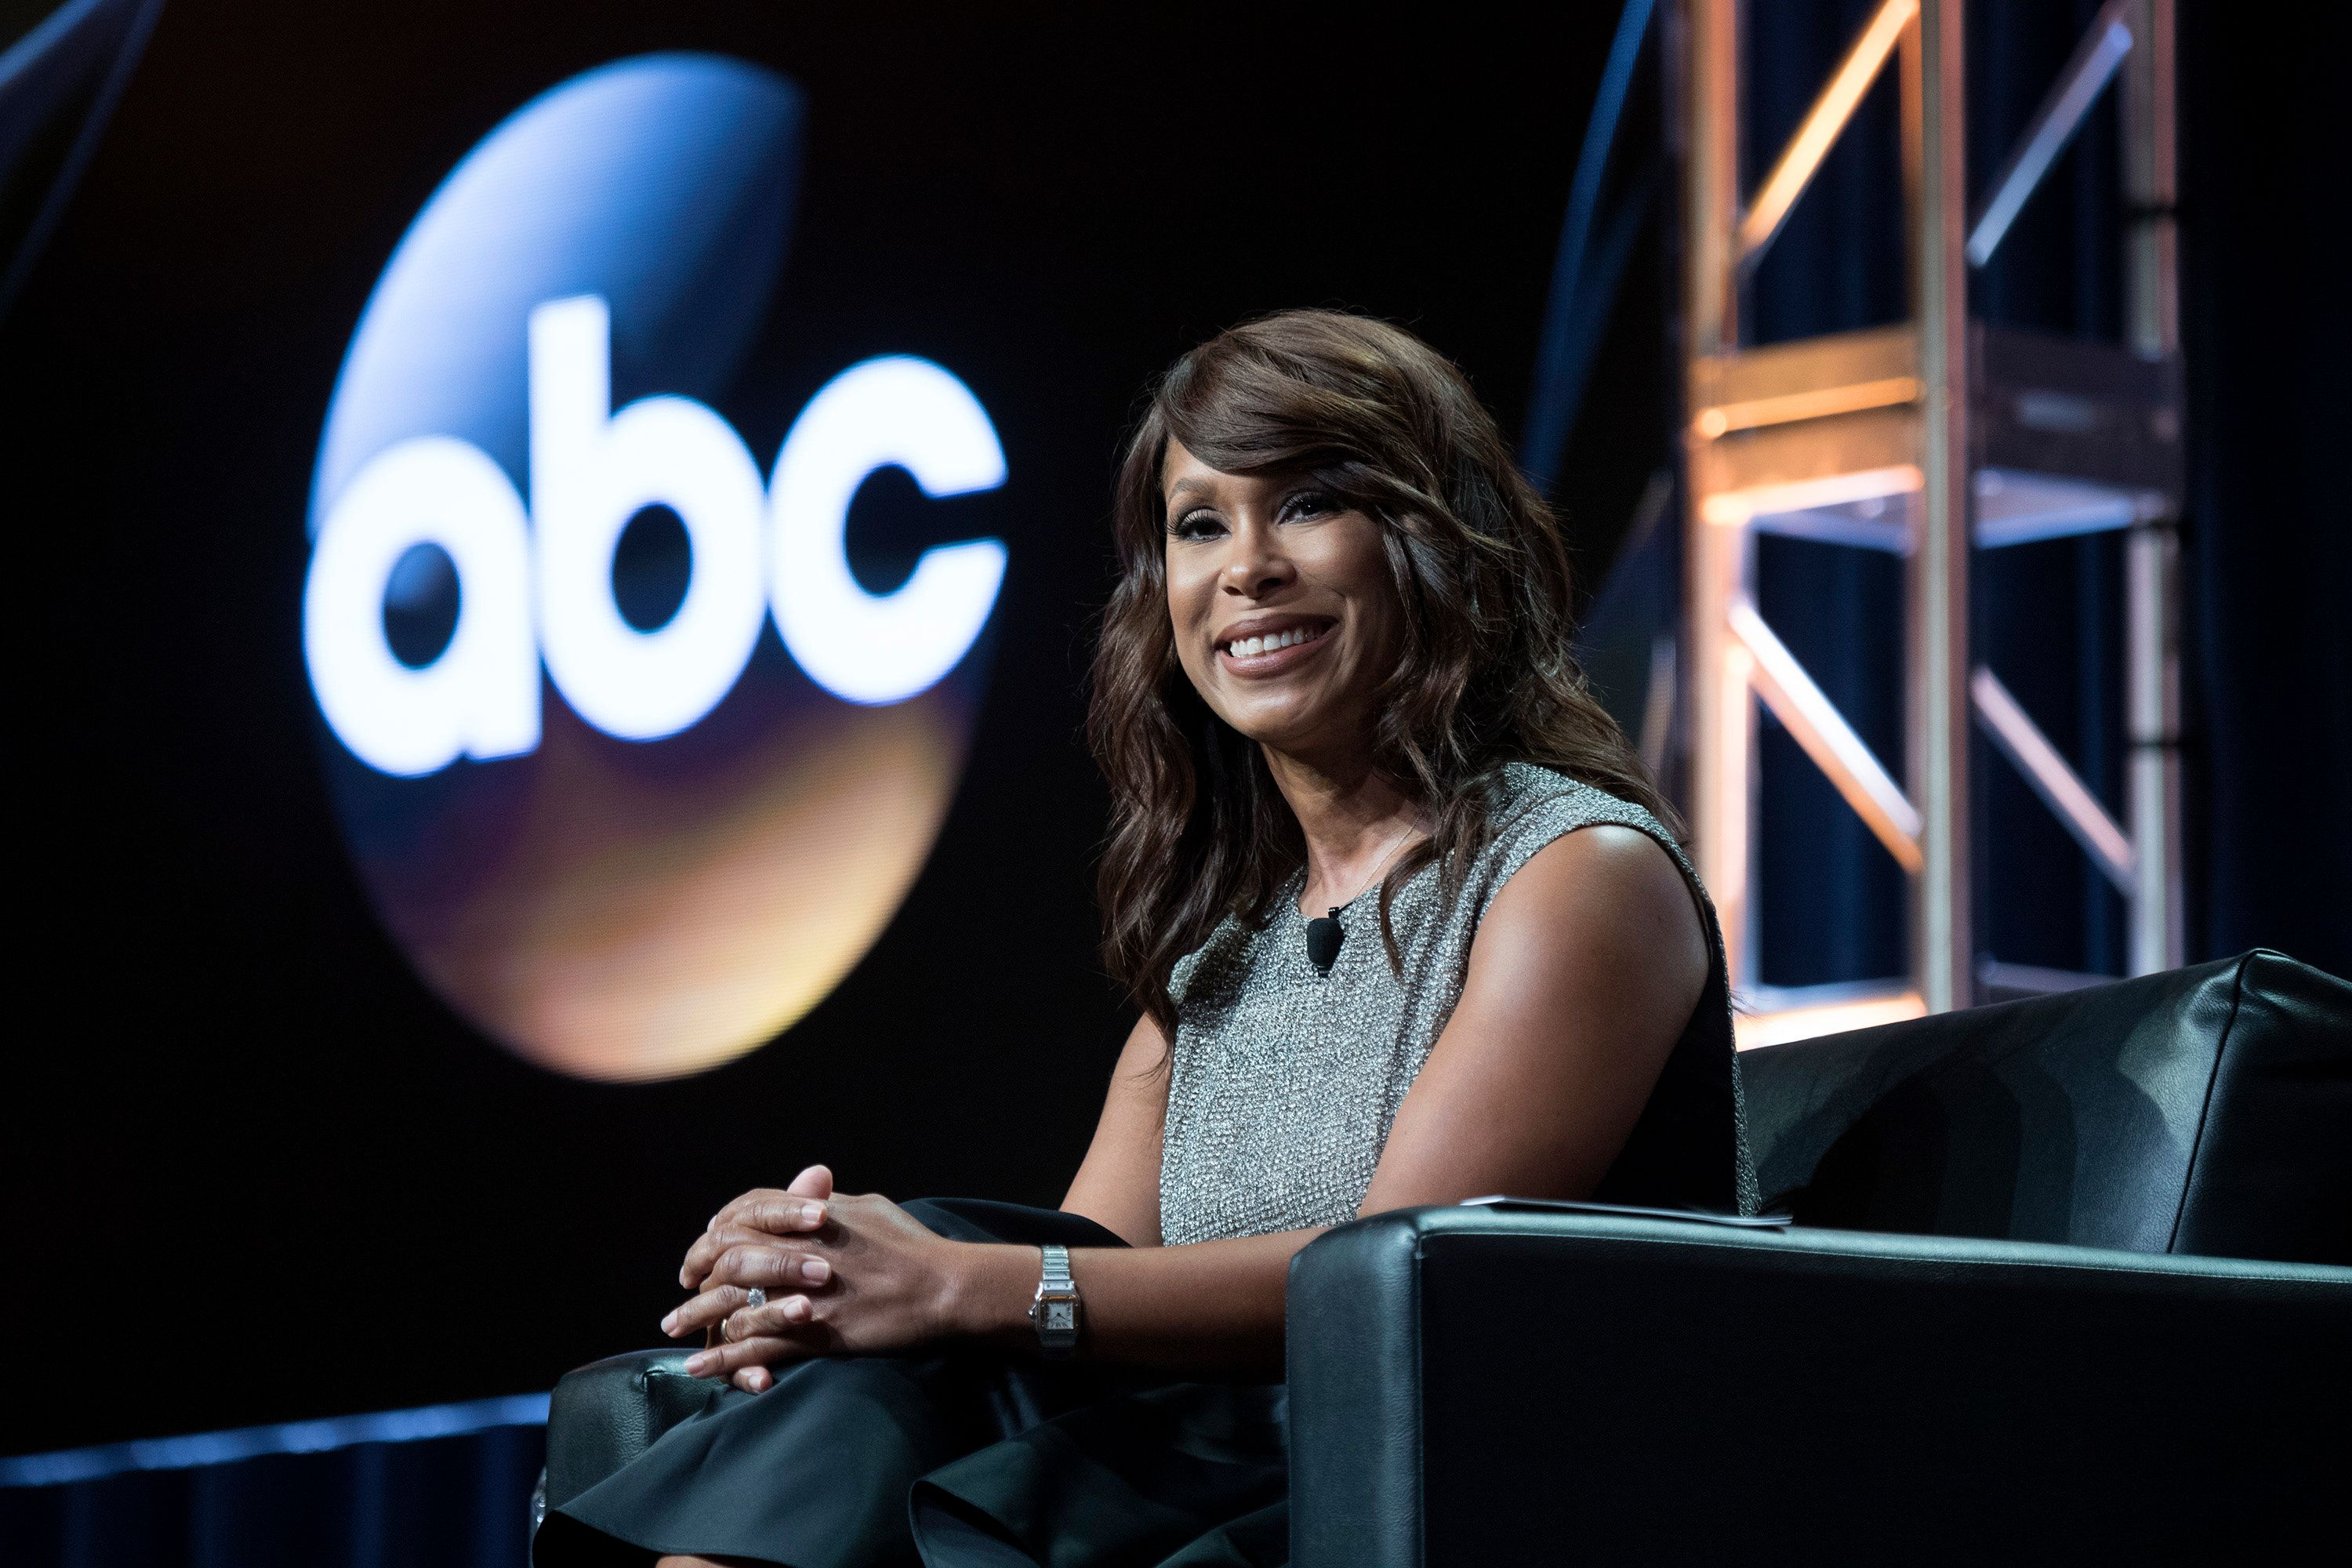 TCA SUMMER PRESS TOUR 2017 - ABC Executive Session & Writing Time - Channing Dungey (President, ABC Entertainment) addresses the press at Disney | ABC Television Group's Summer Press Tour 2017 at The Beverly Hilton in Beverly Hills, California. (ABC / Image Group LA via Getty Images)